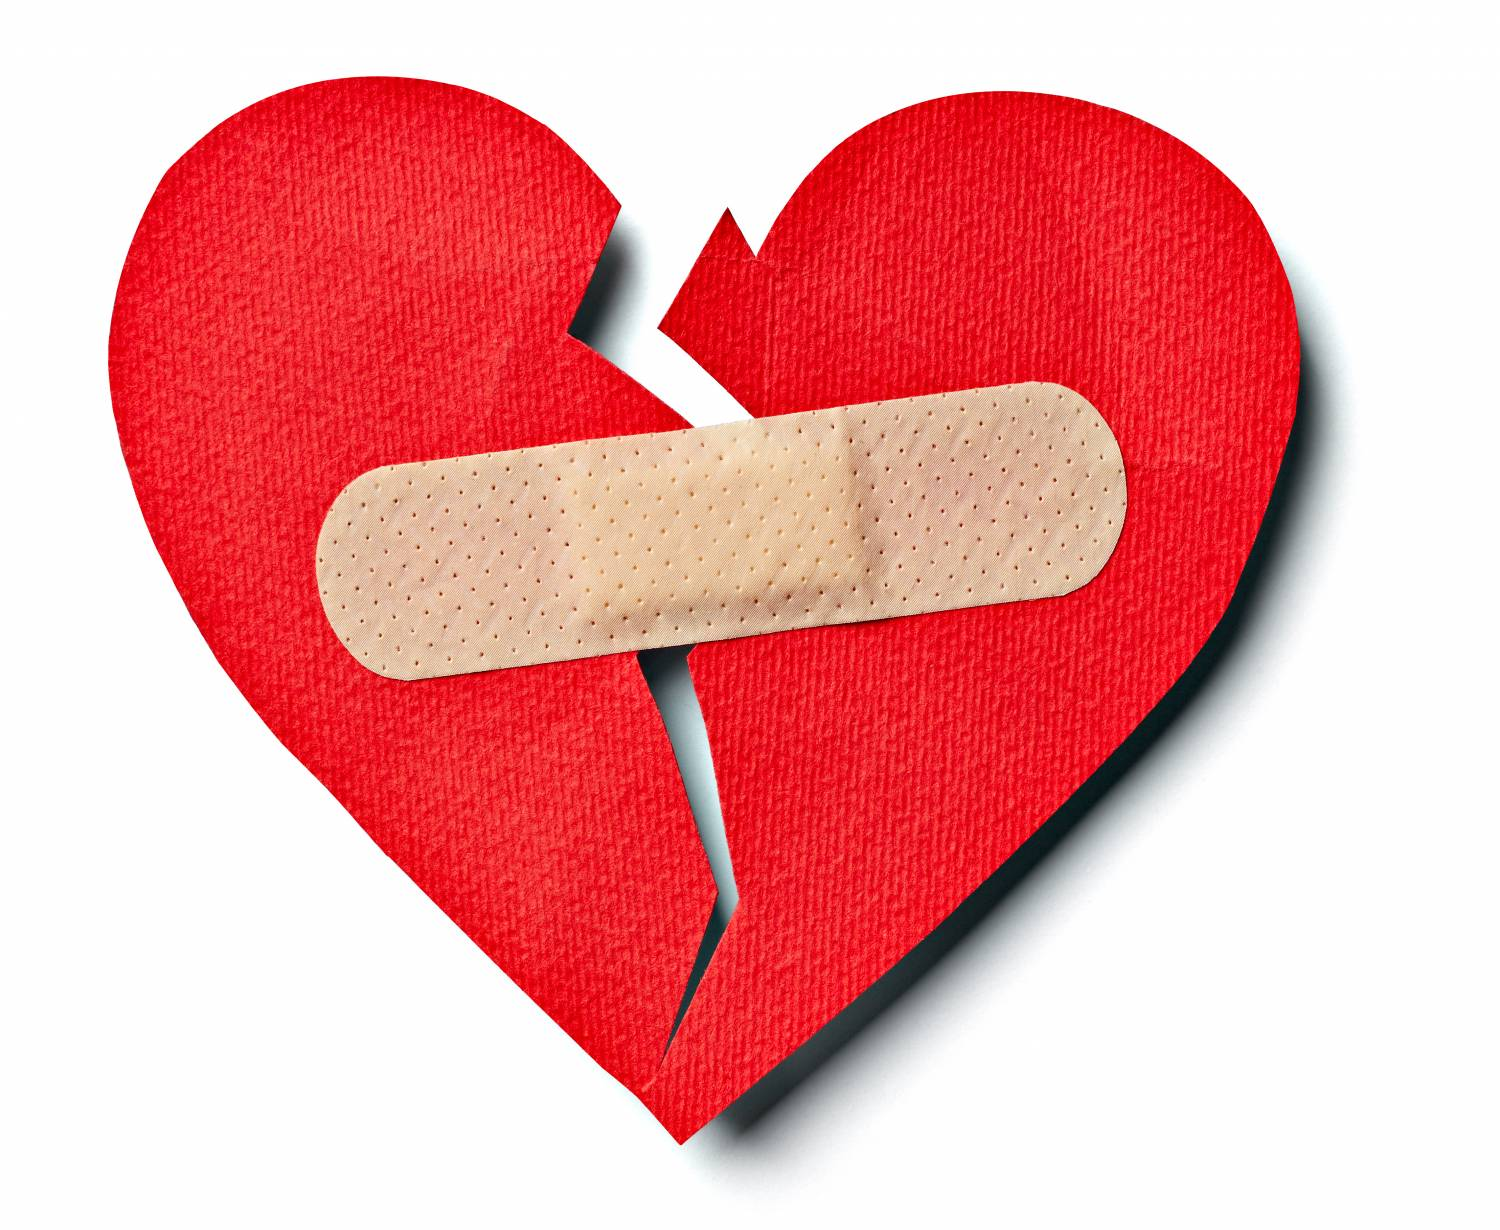 Broken heart with bandage: healing.